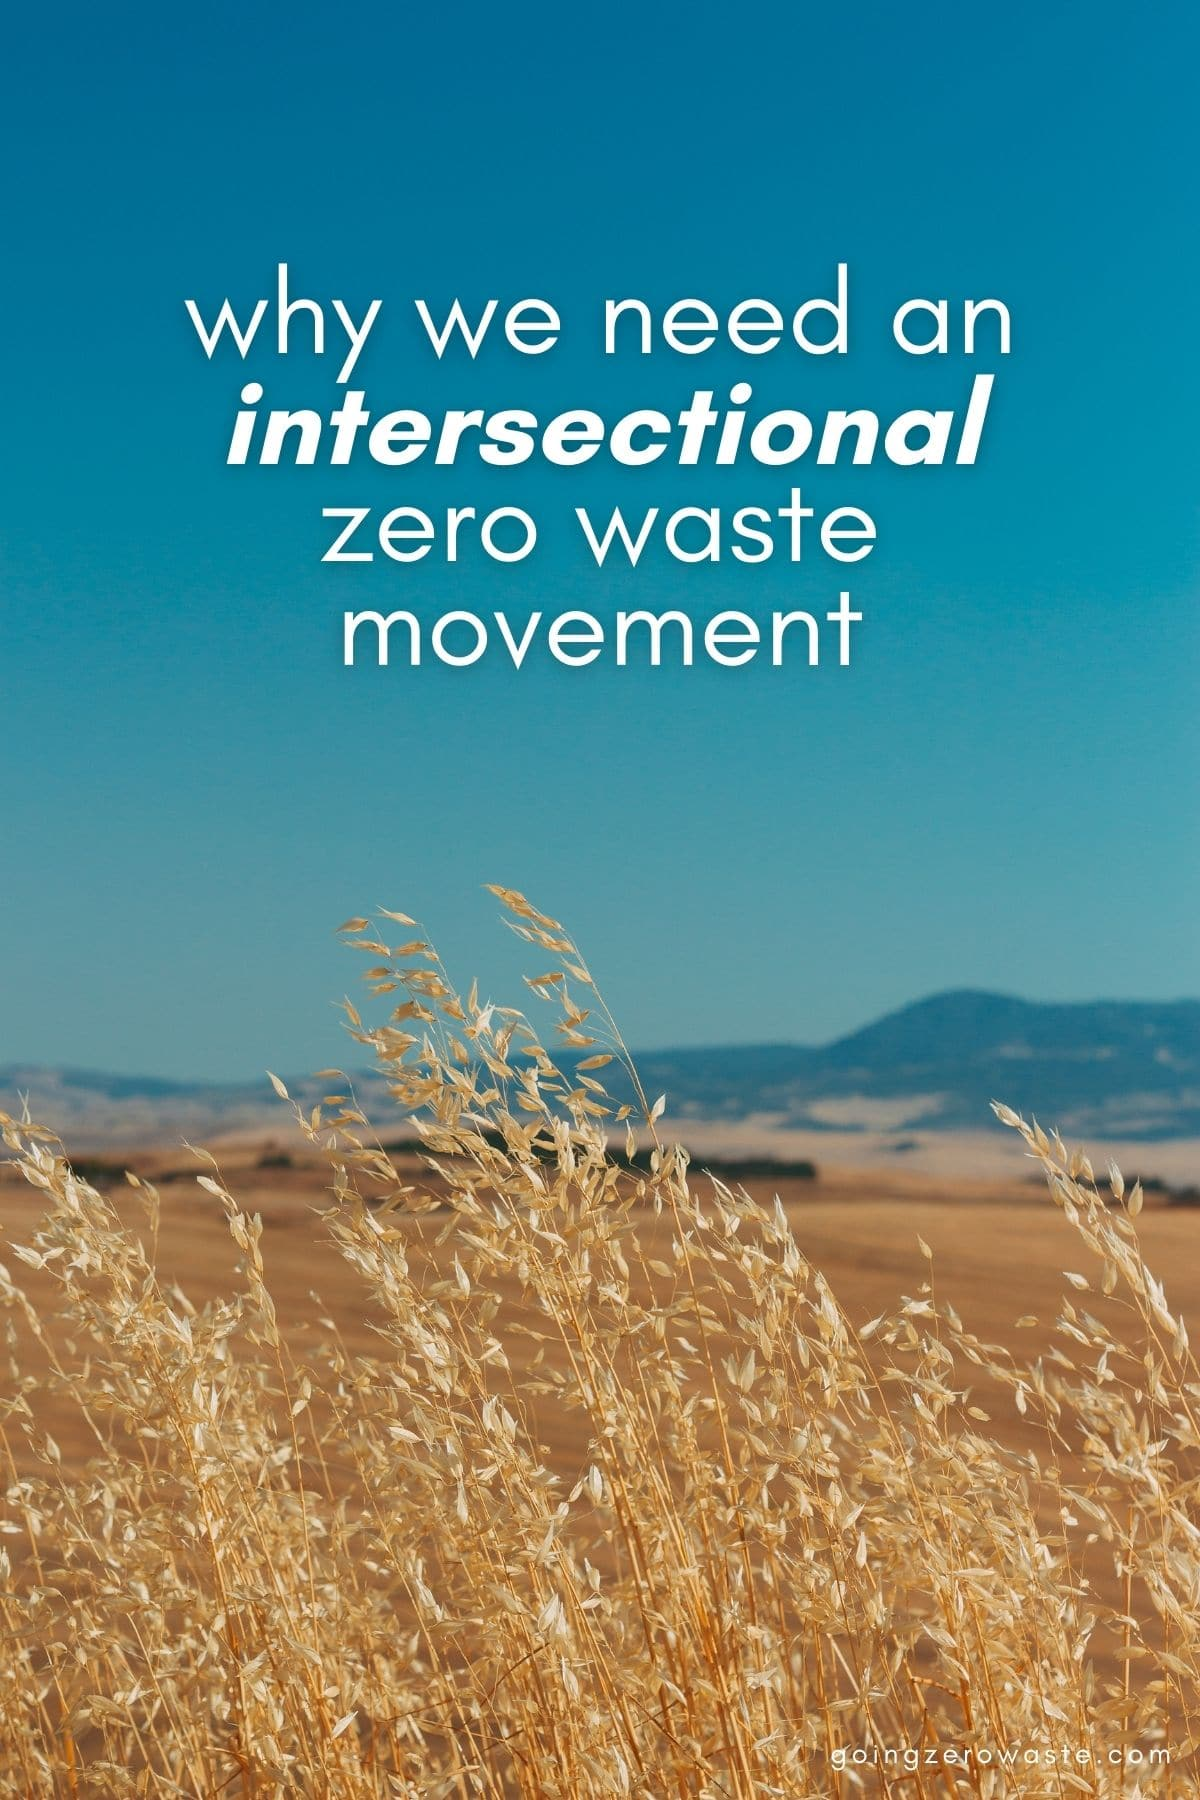 Why we need an intersectional zero waste movement from www.goingzerowaste.comWhy we need an intersectional zero waste movement from www.goingzerowaste.com